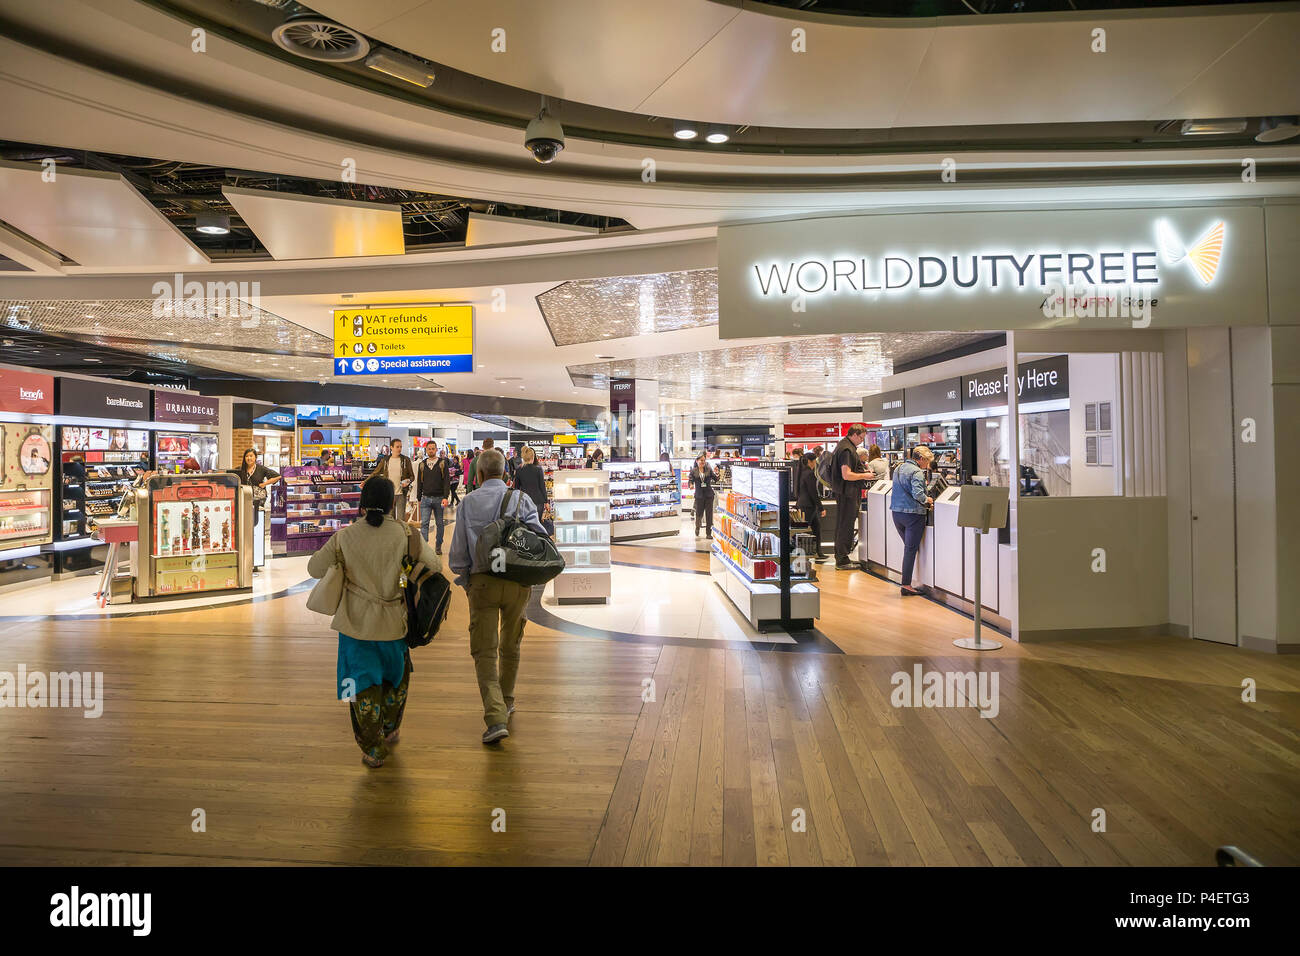 Duty free shopping with sign for VAT refunds and customs enquiries, Heathrow, London airport, UK - Stock Image